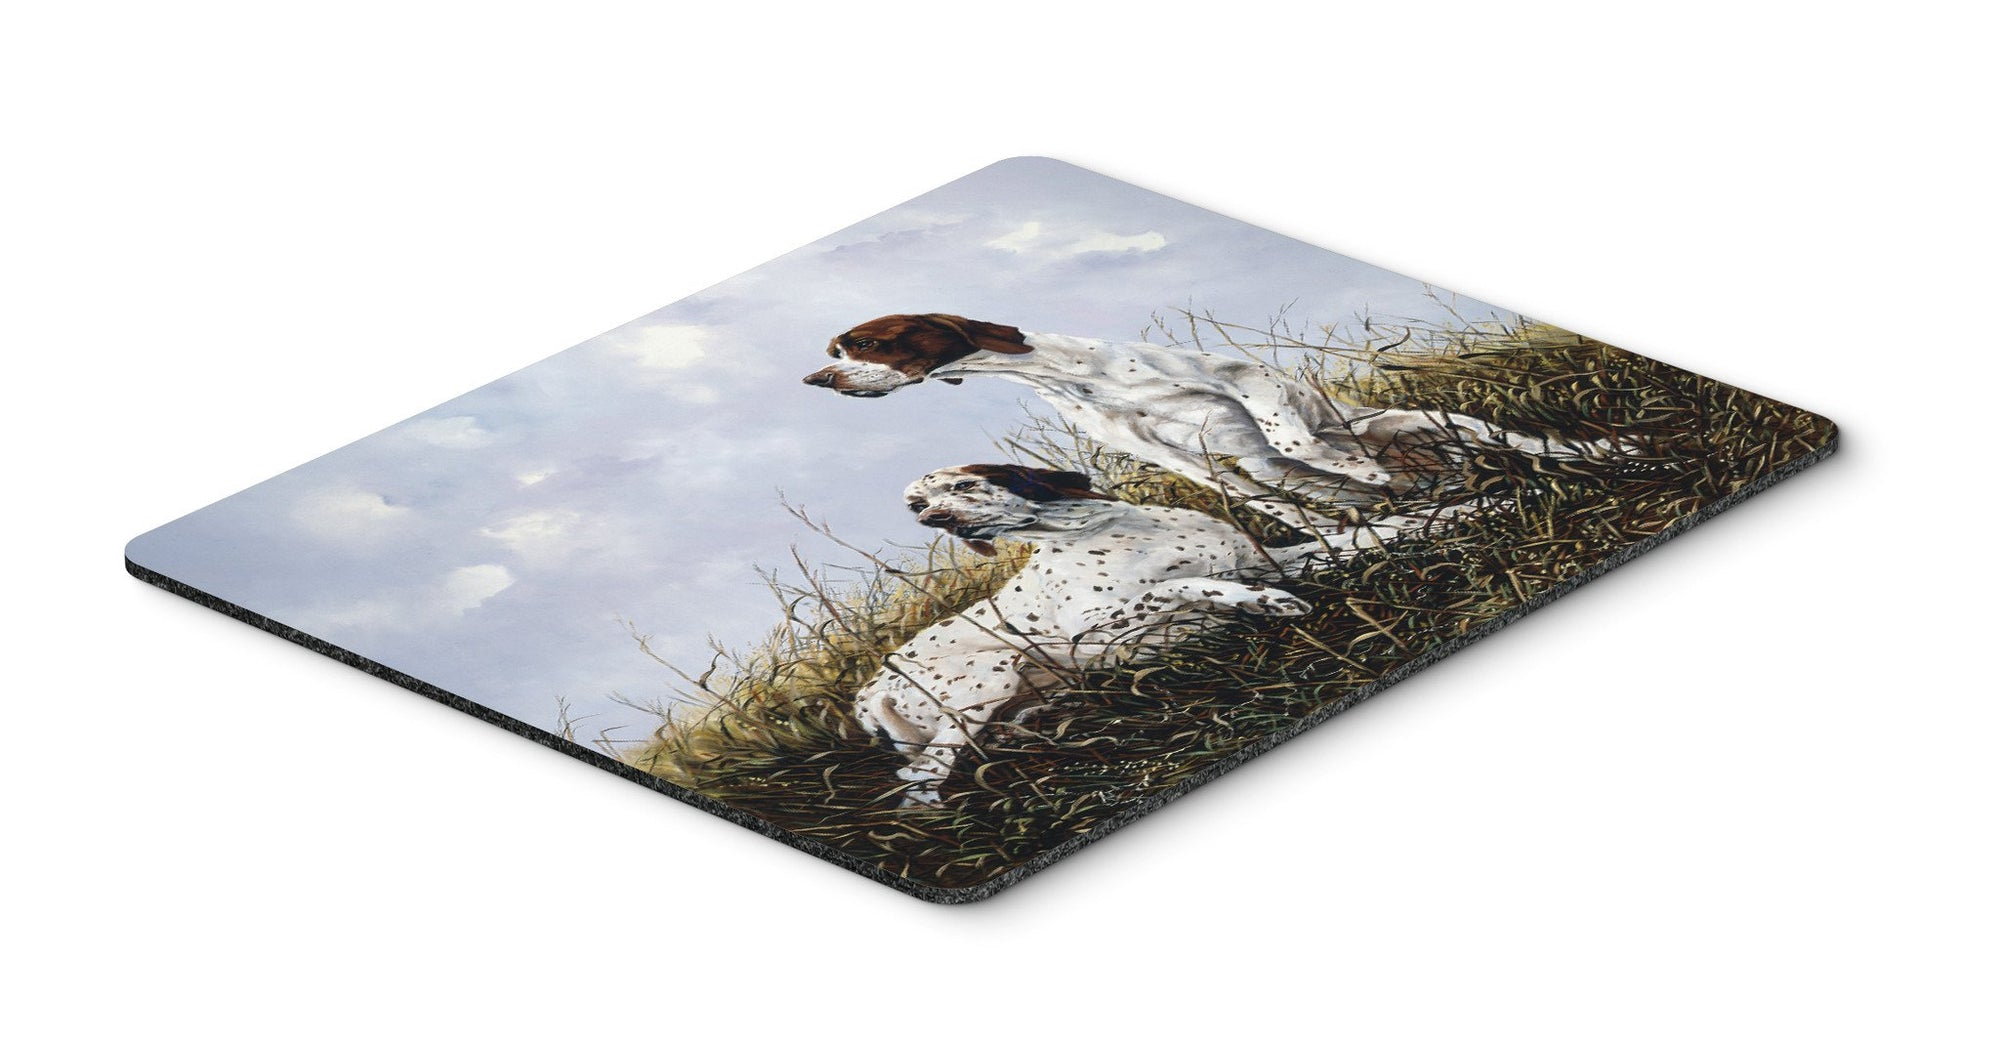 English Pointer by Michael Herring Mouse Pad, Hot Pad or Trivet HMHE0011MP by Caroline's Treasures